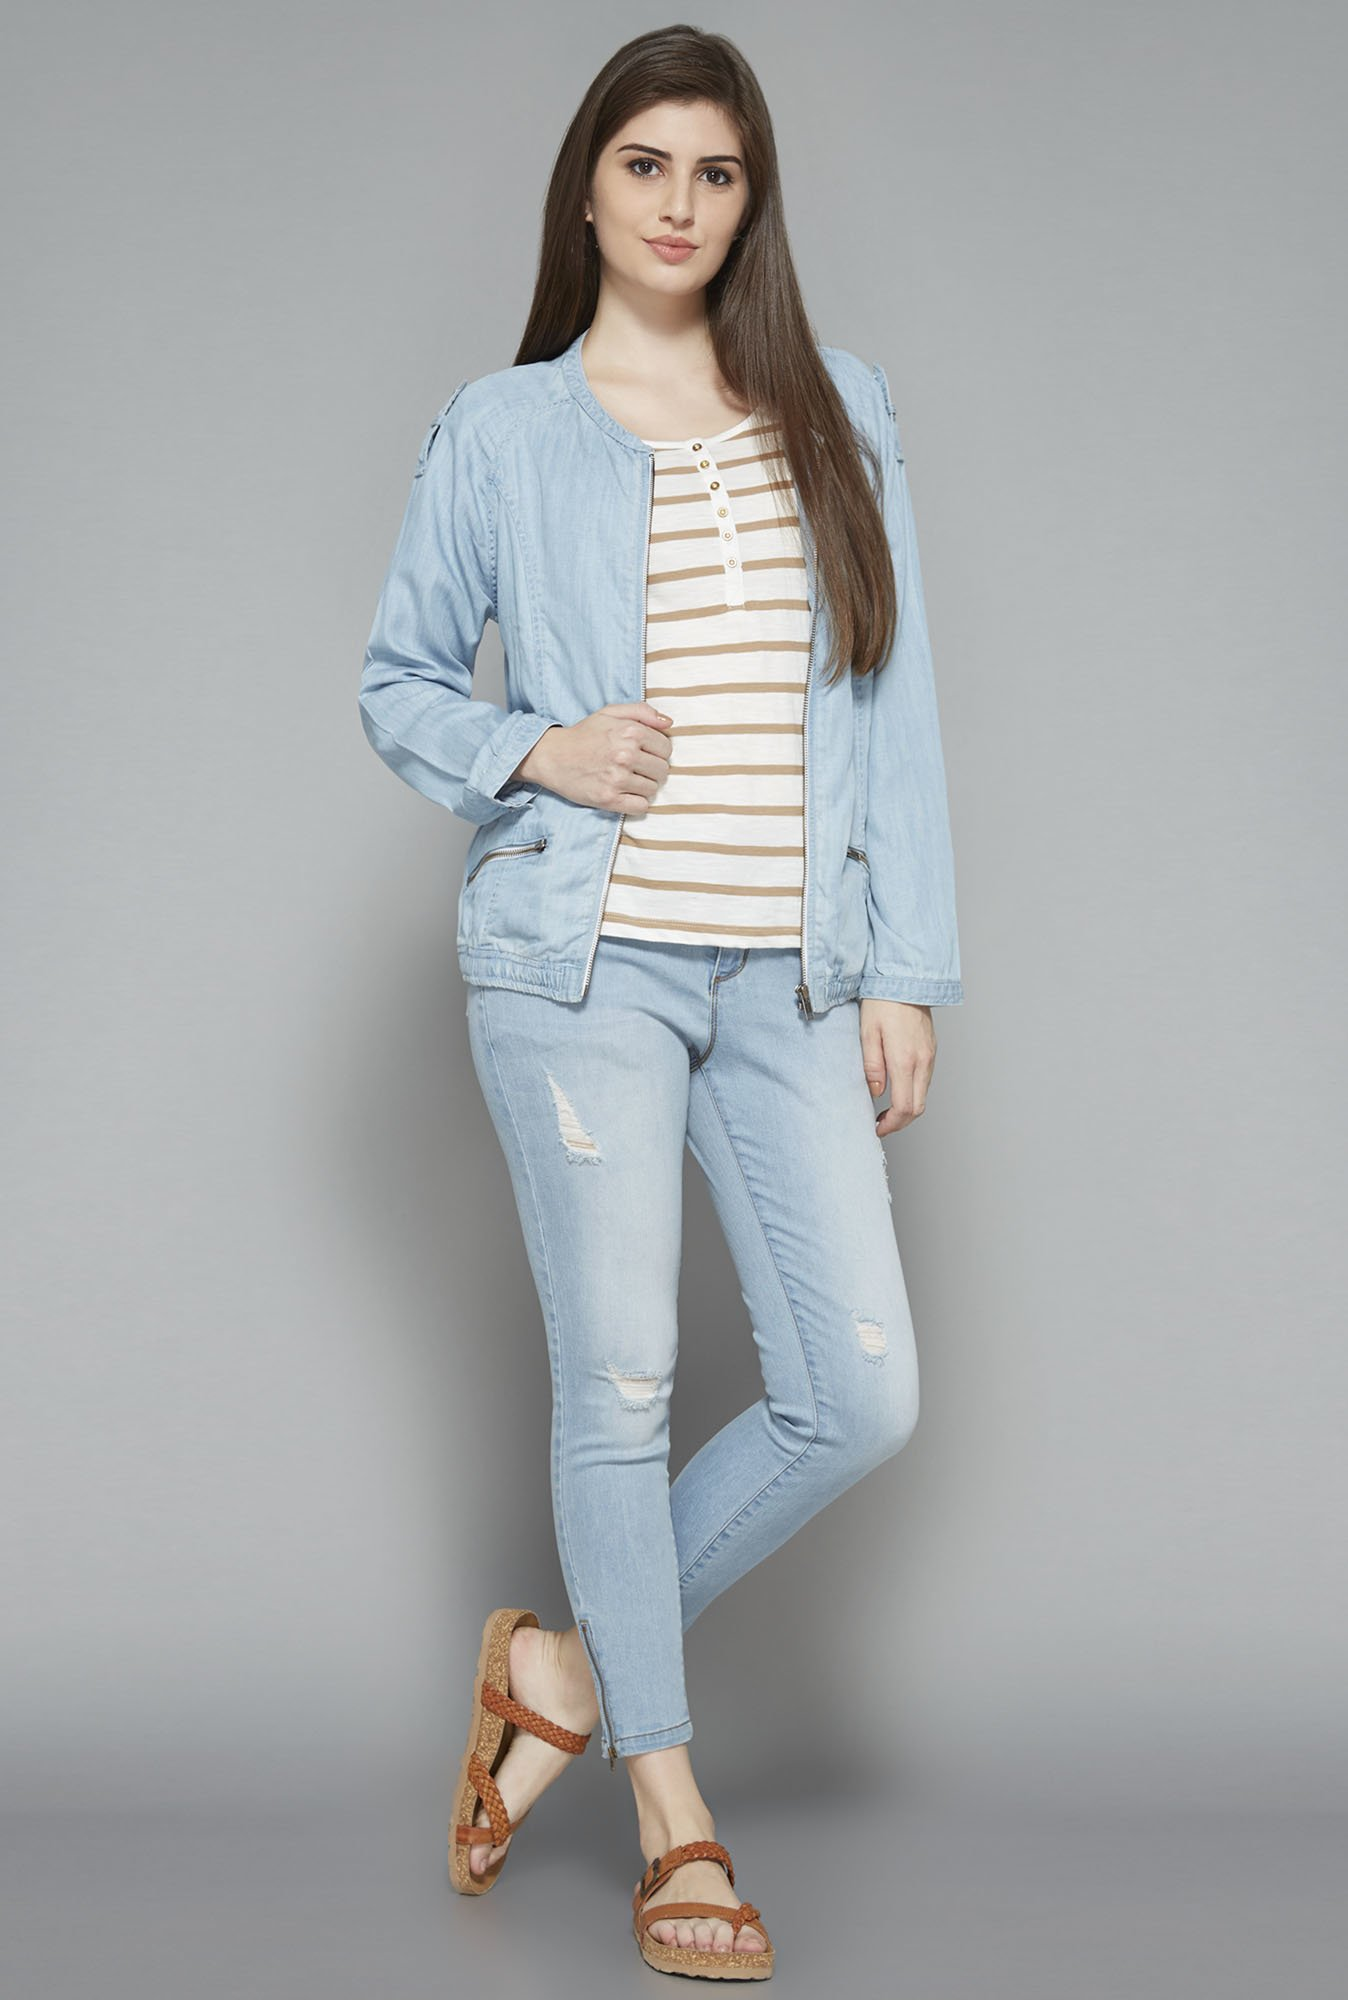 LOV by Westside Blue Decca Jacket